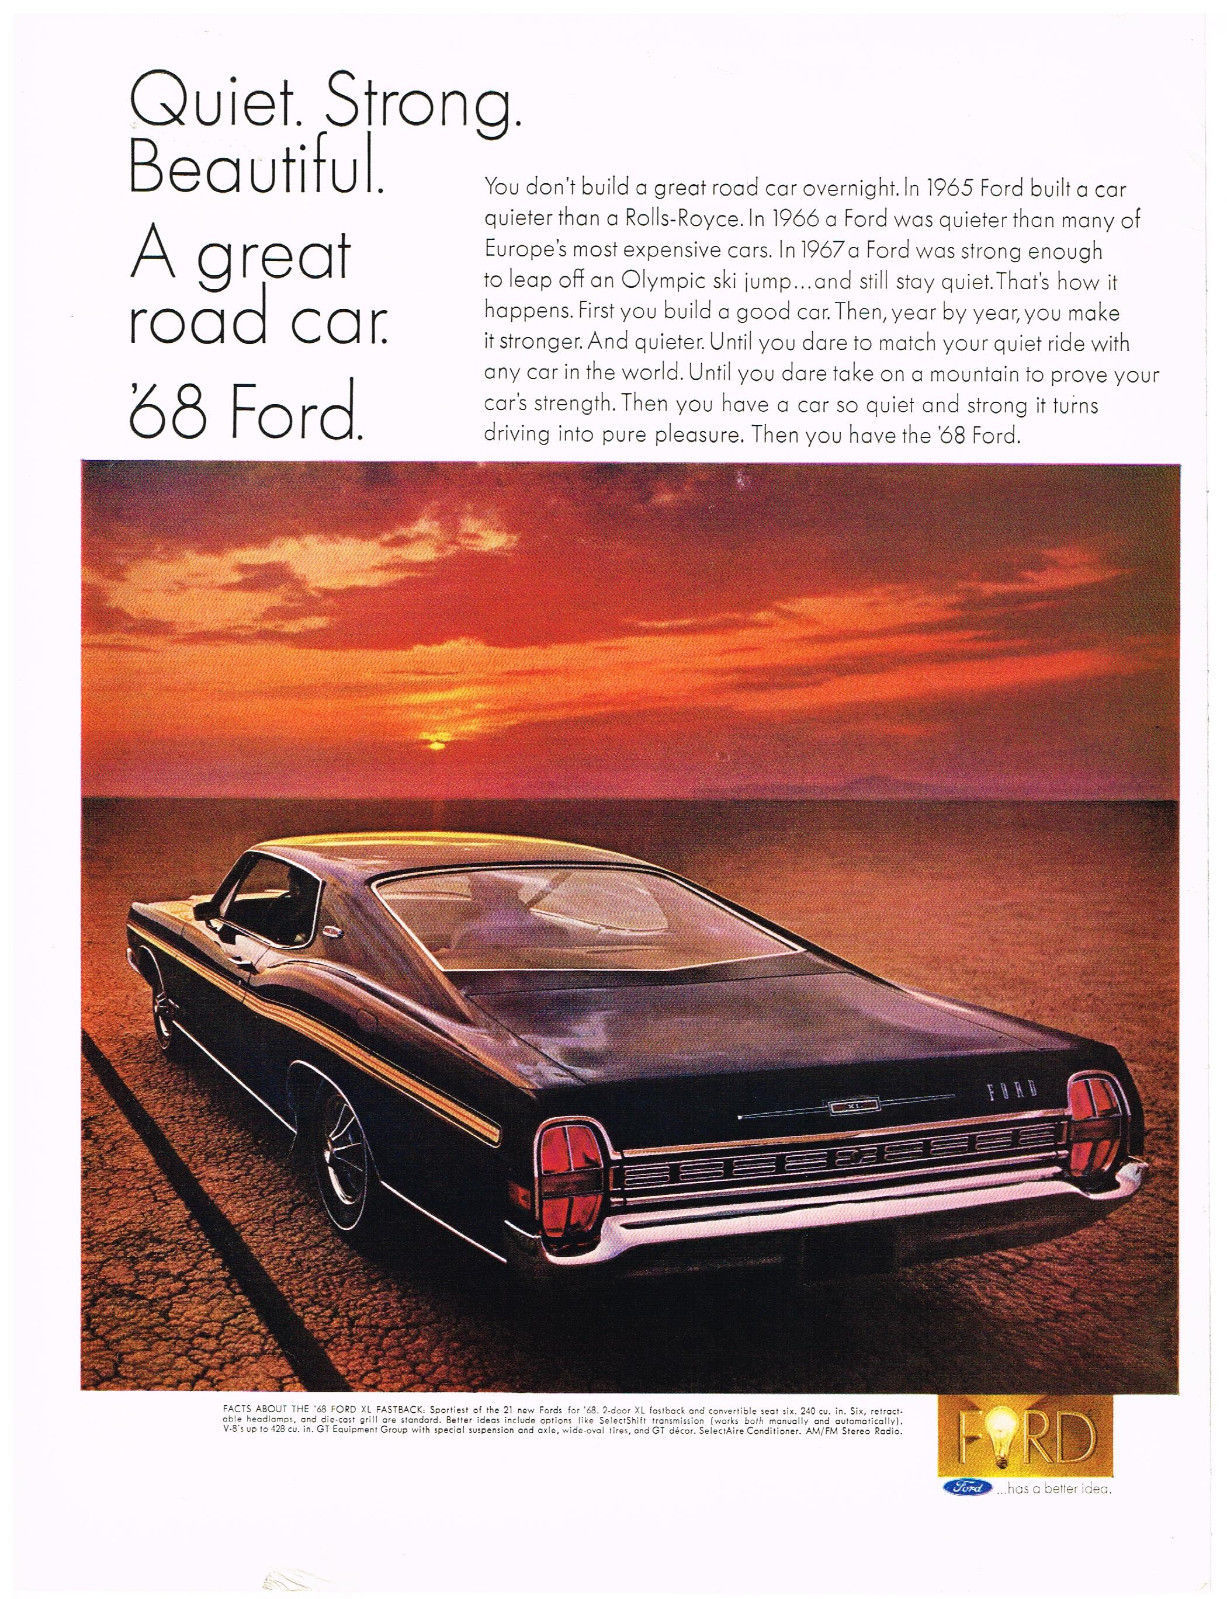 Vintage 1968 Magazine Ad For Ford Quiet Strong Turns Driving Into A Pleasure - $5.93